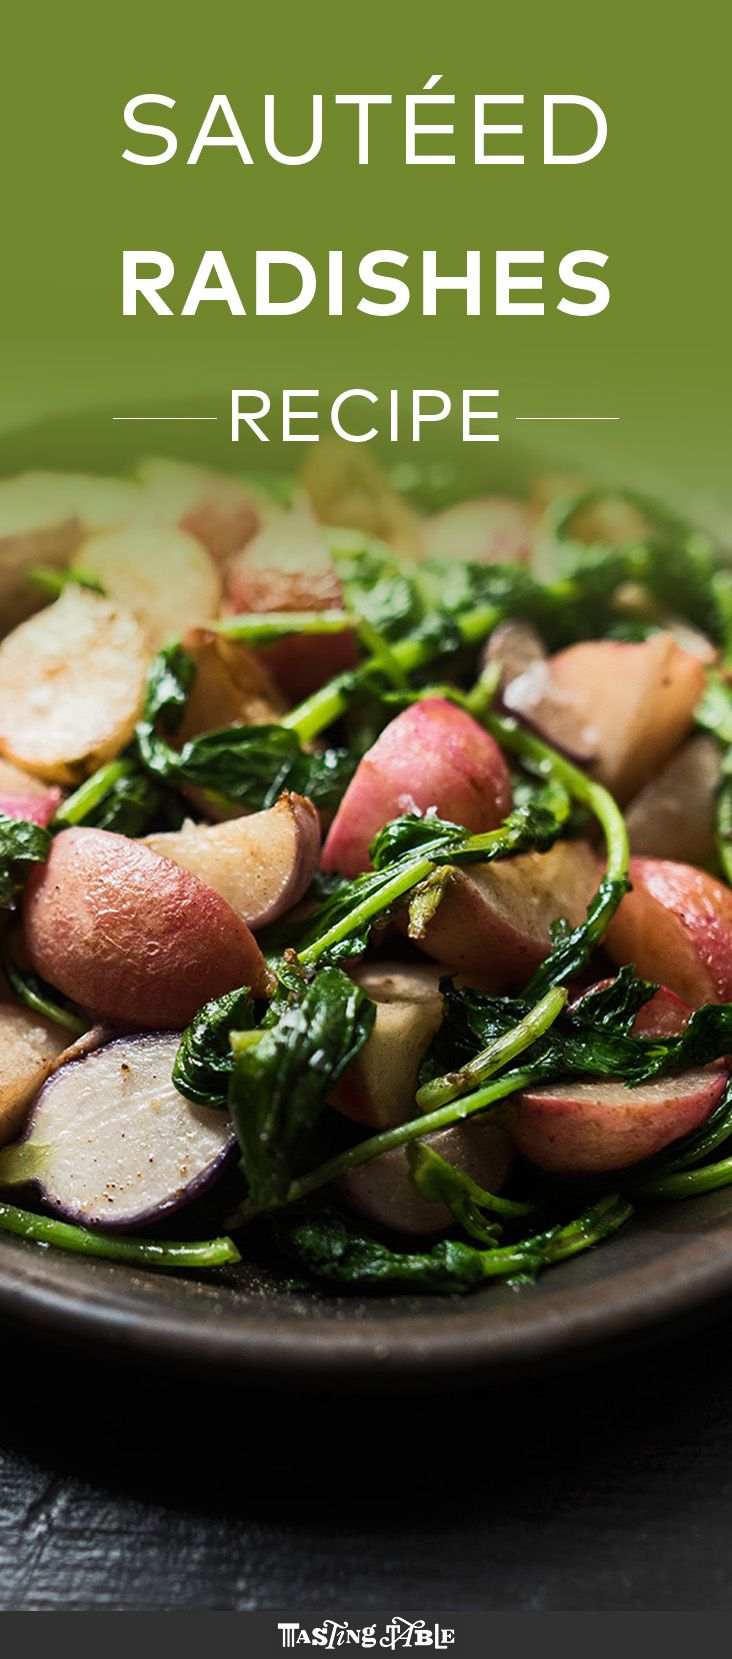 Watch and learn how to make simply cooked radishes with their greens.